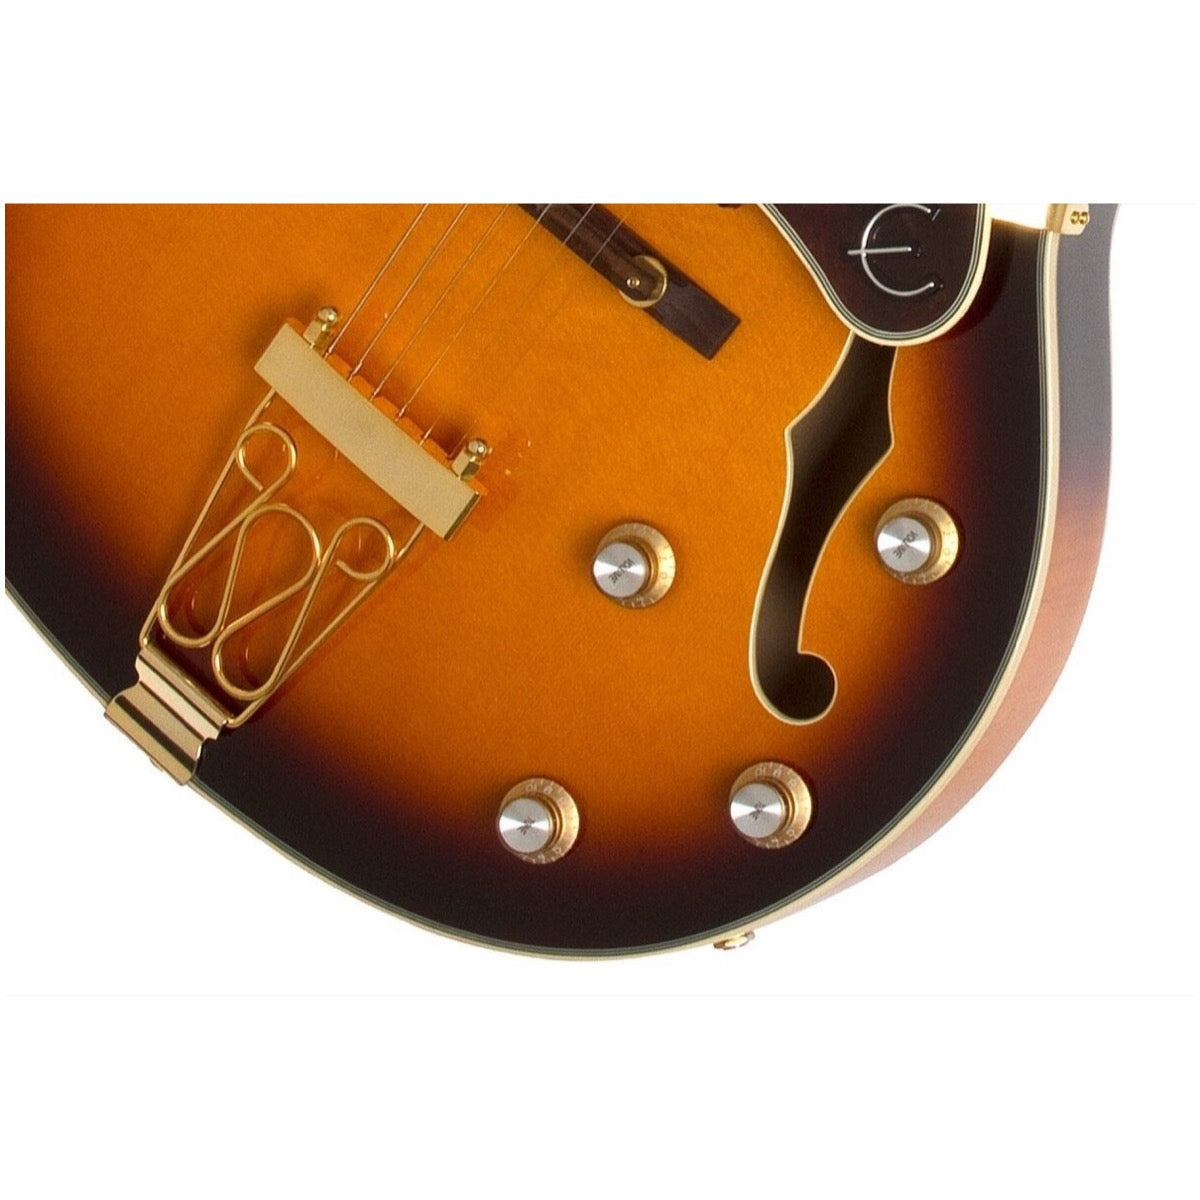 Epiphone Joe Pass Emperor-II PRO Electric Guitar, Vintage Sunburst